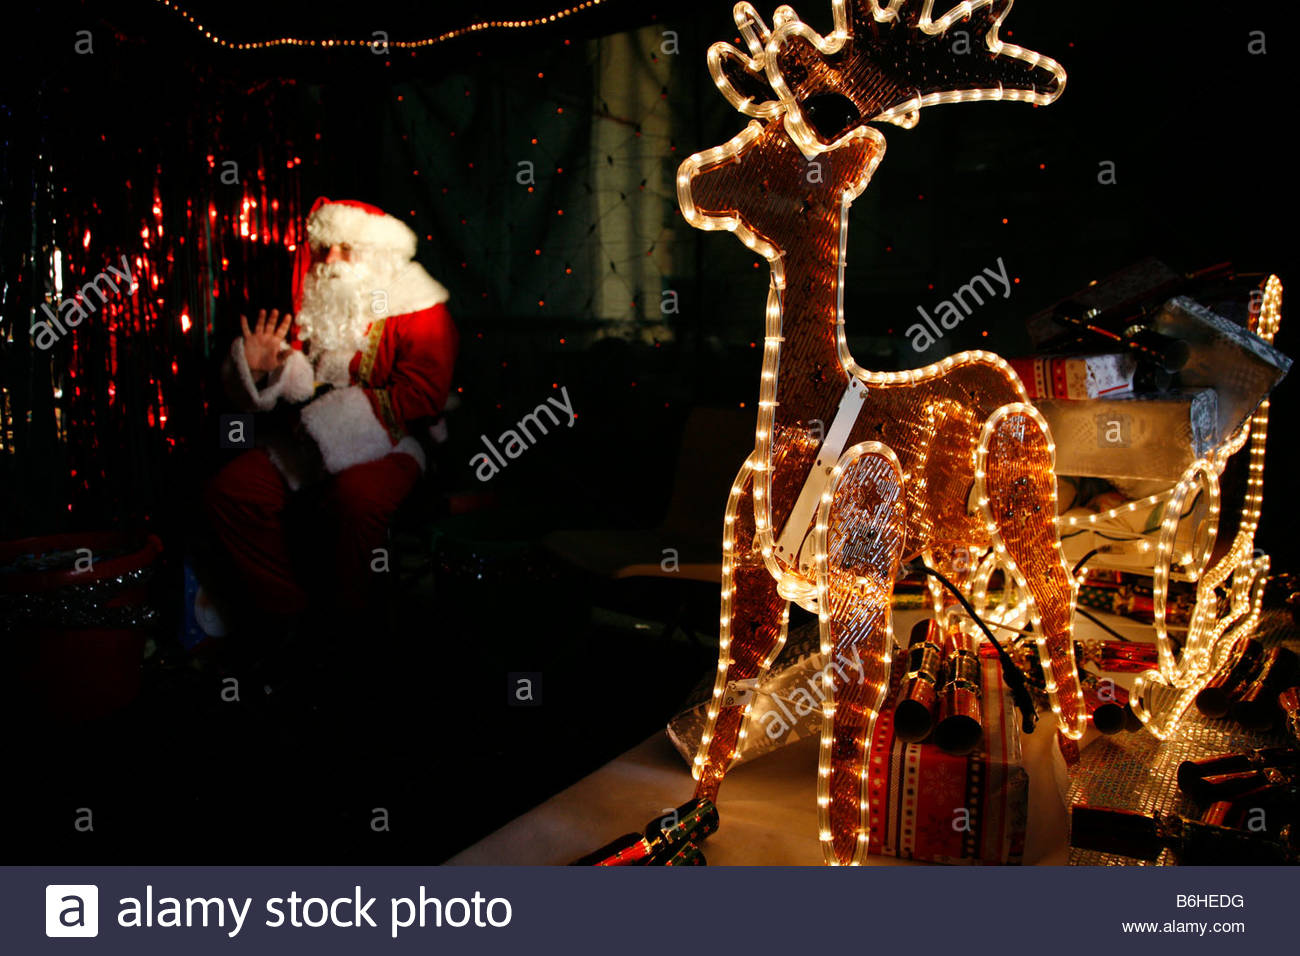 Santa S Grotto Colouring Pages With Santas Stock Photos Images Alamy